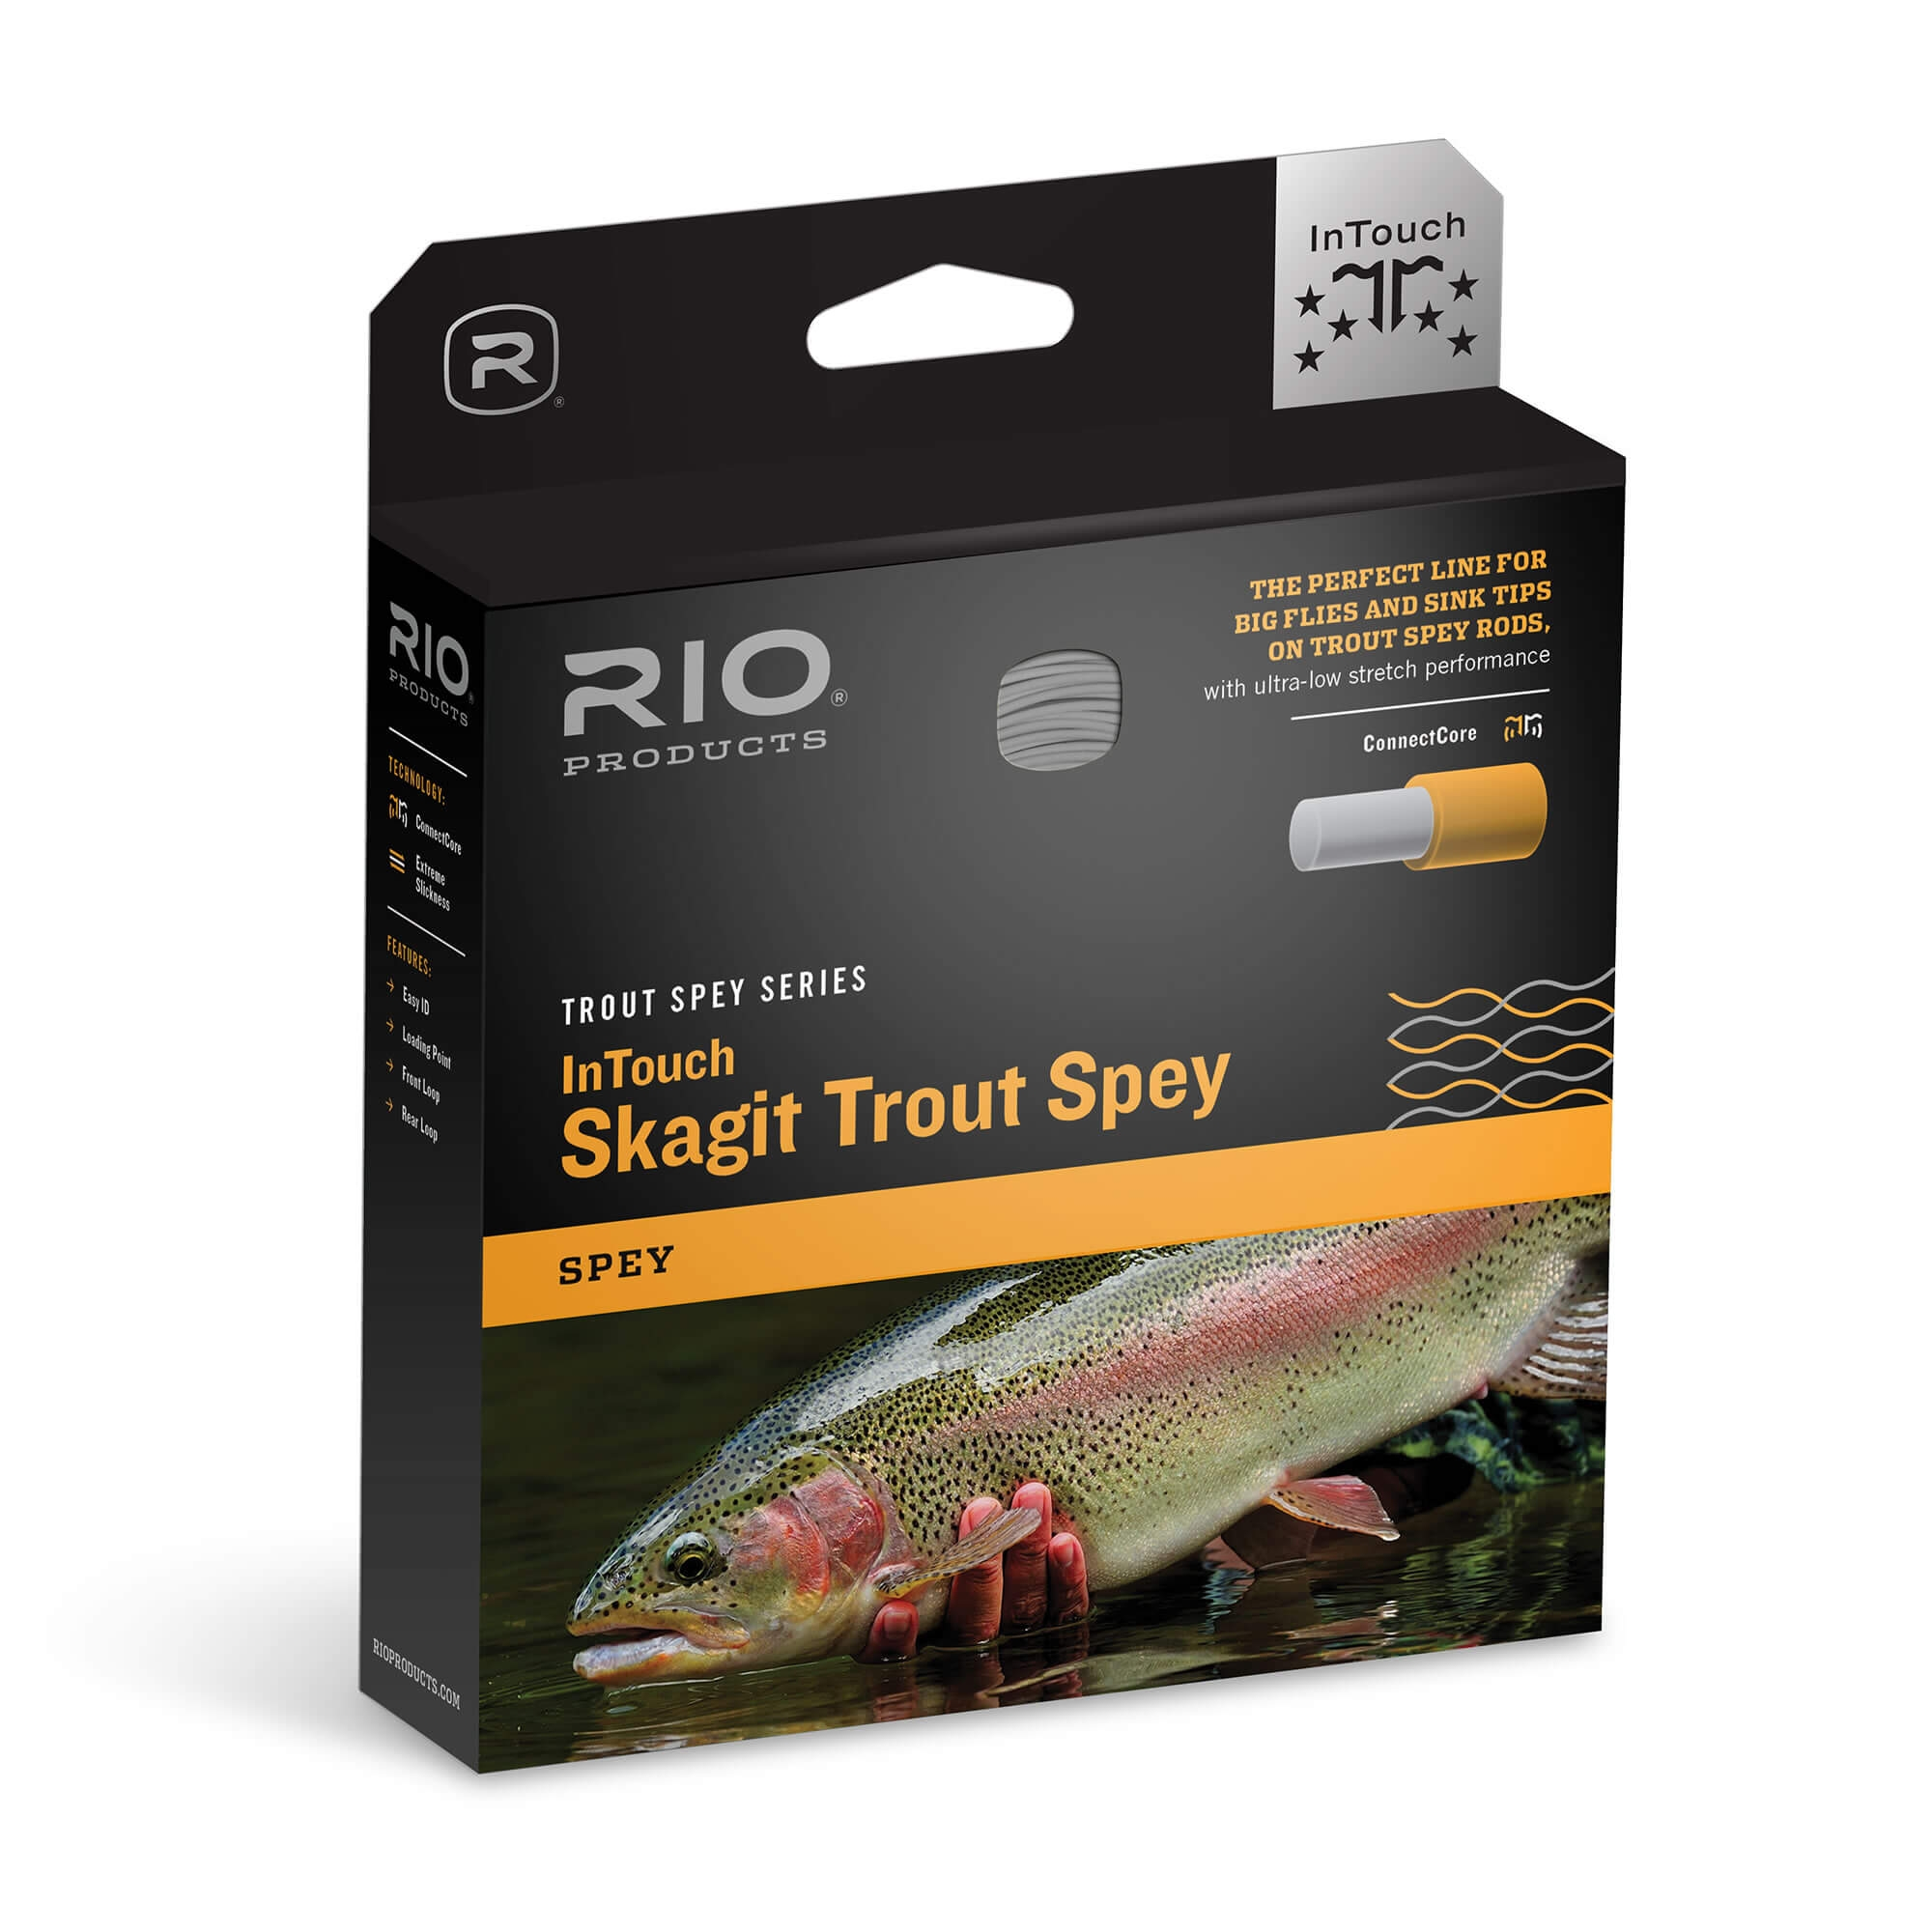 INTOUCH SKAGIT TROUT SPEY